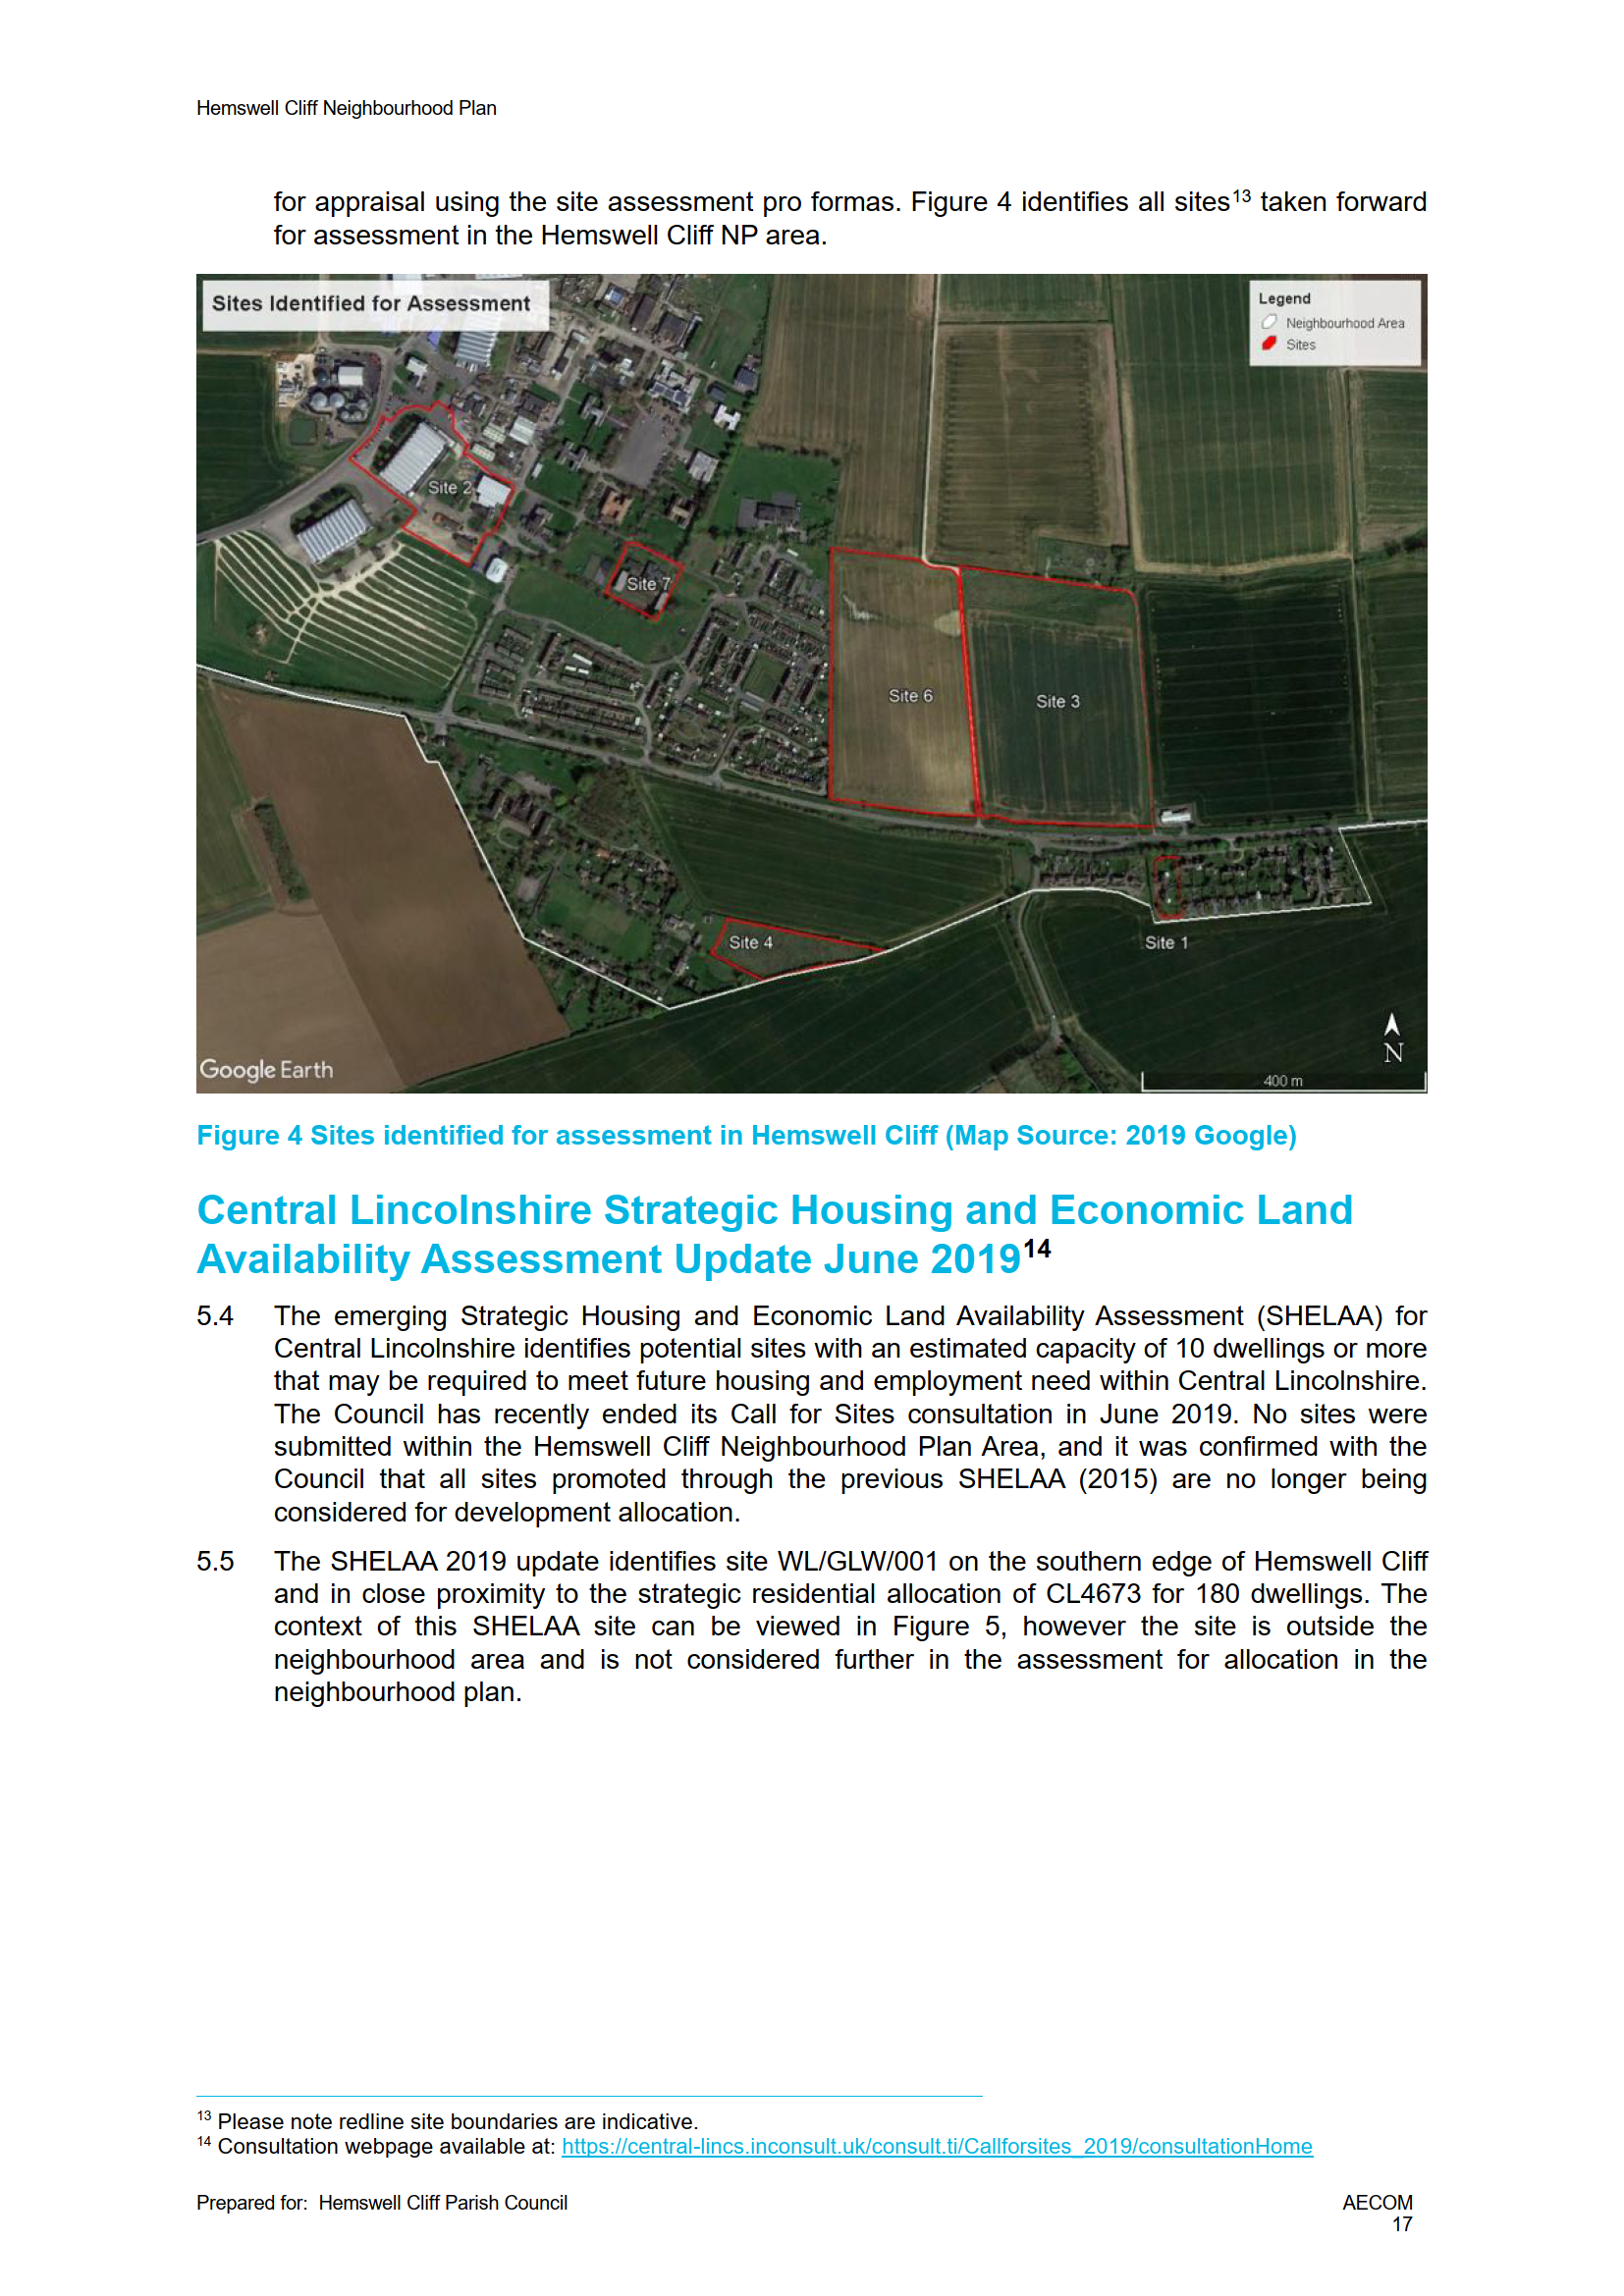 Hemswell_Cliff_Site_Options_and_Assessment_Final_041119-2_17.png